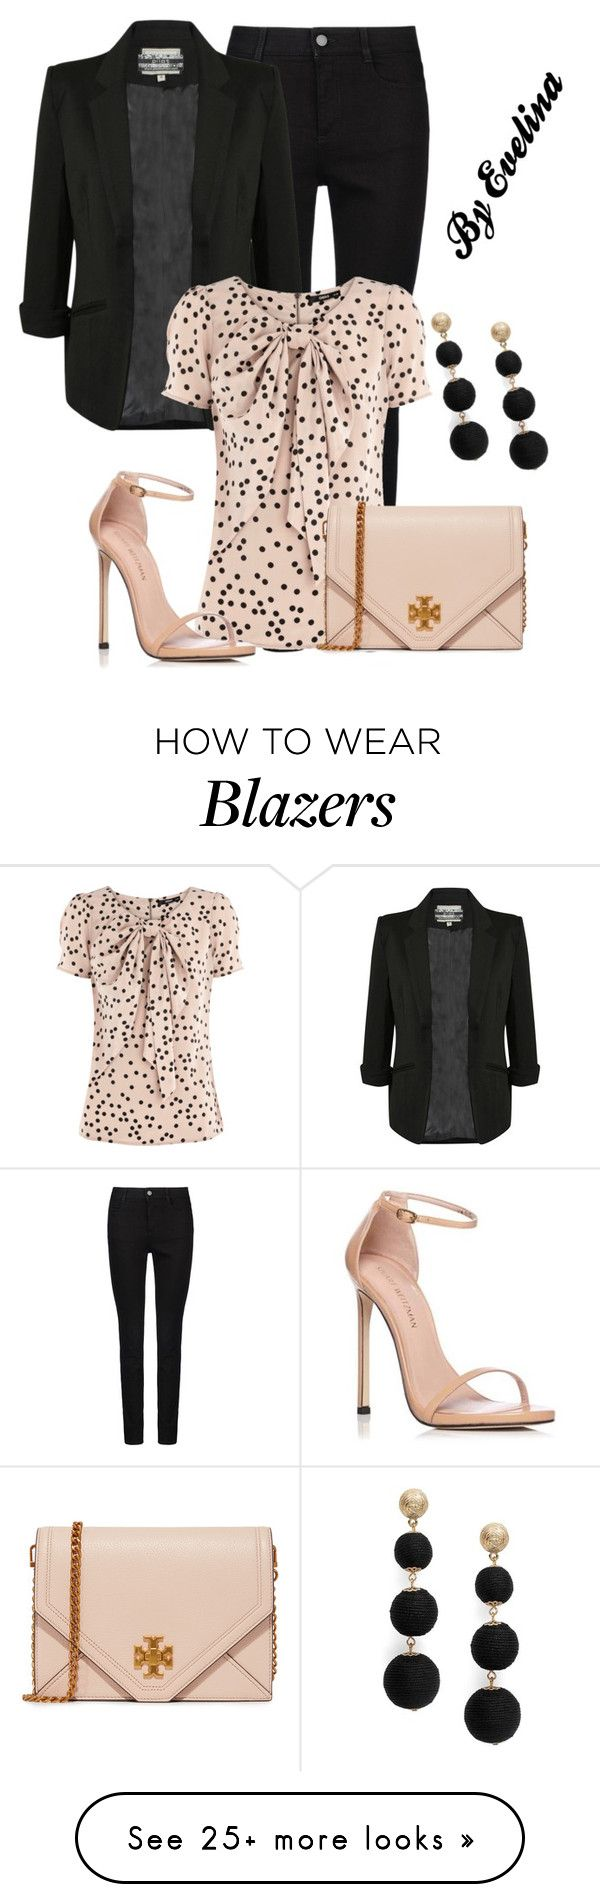 """EVE"" by evelina-er on Polyvore featuring STELLA McCARTNEY, Pilot, Oasis, Stuart Weitzman, Tory Burch and R.J. Graziano"